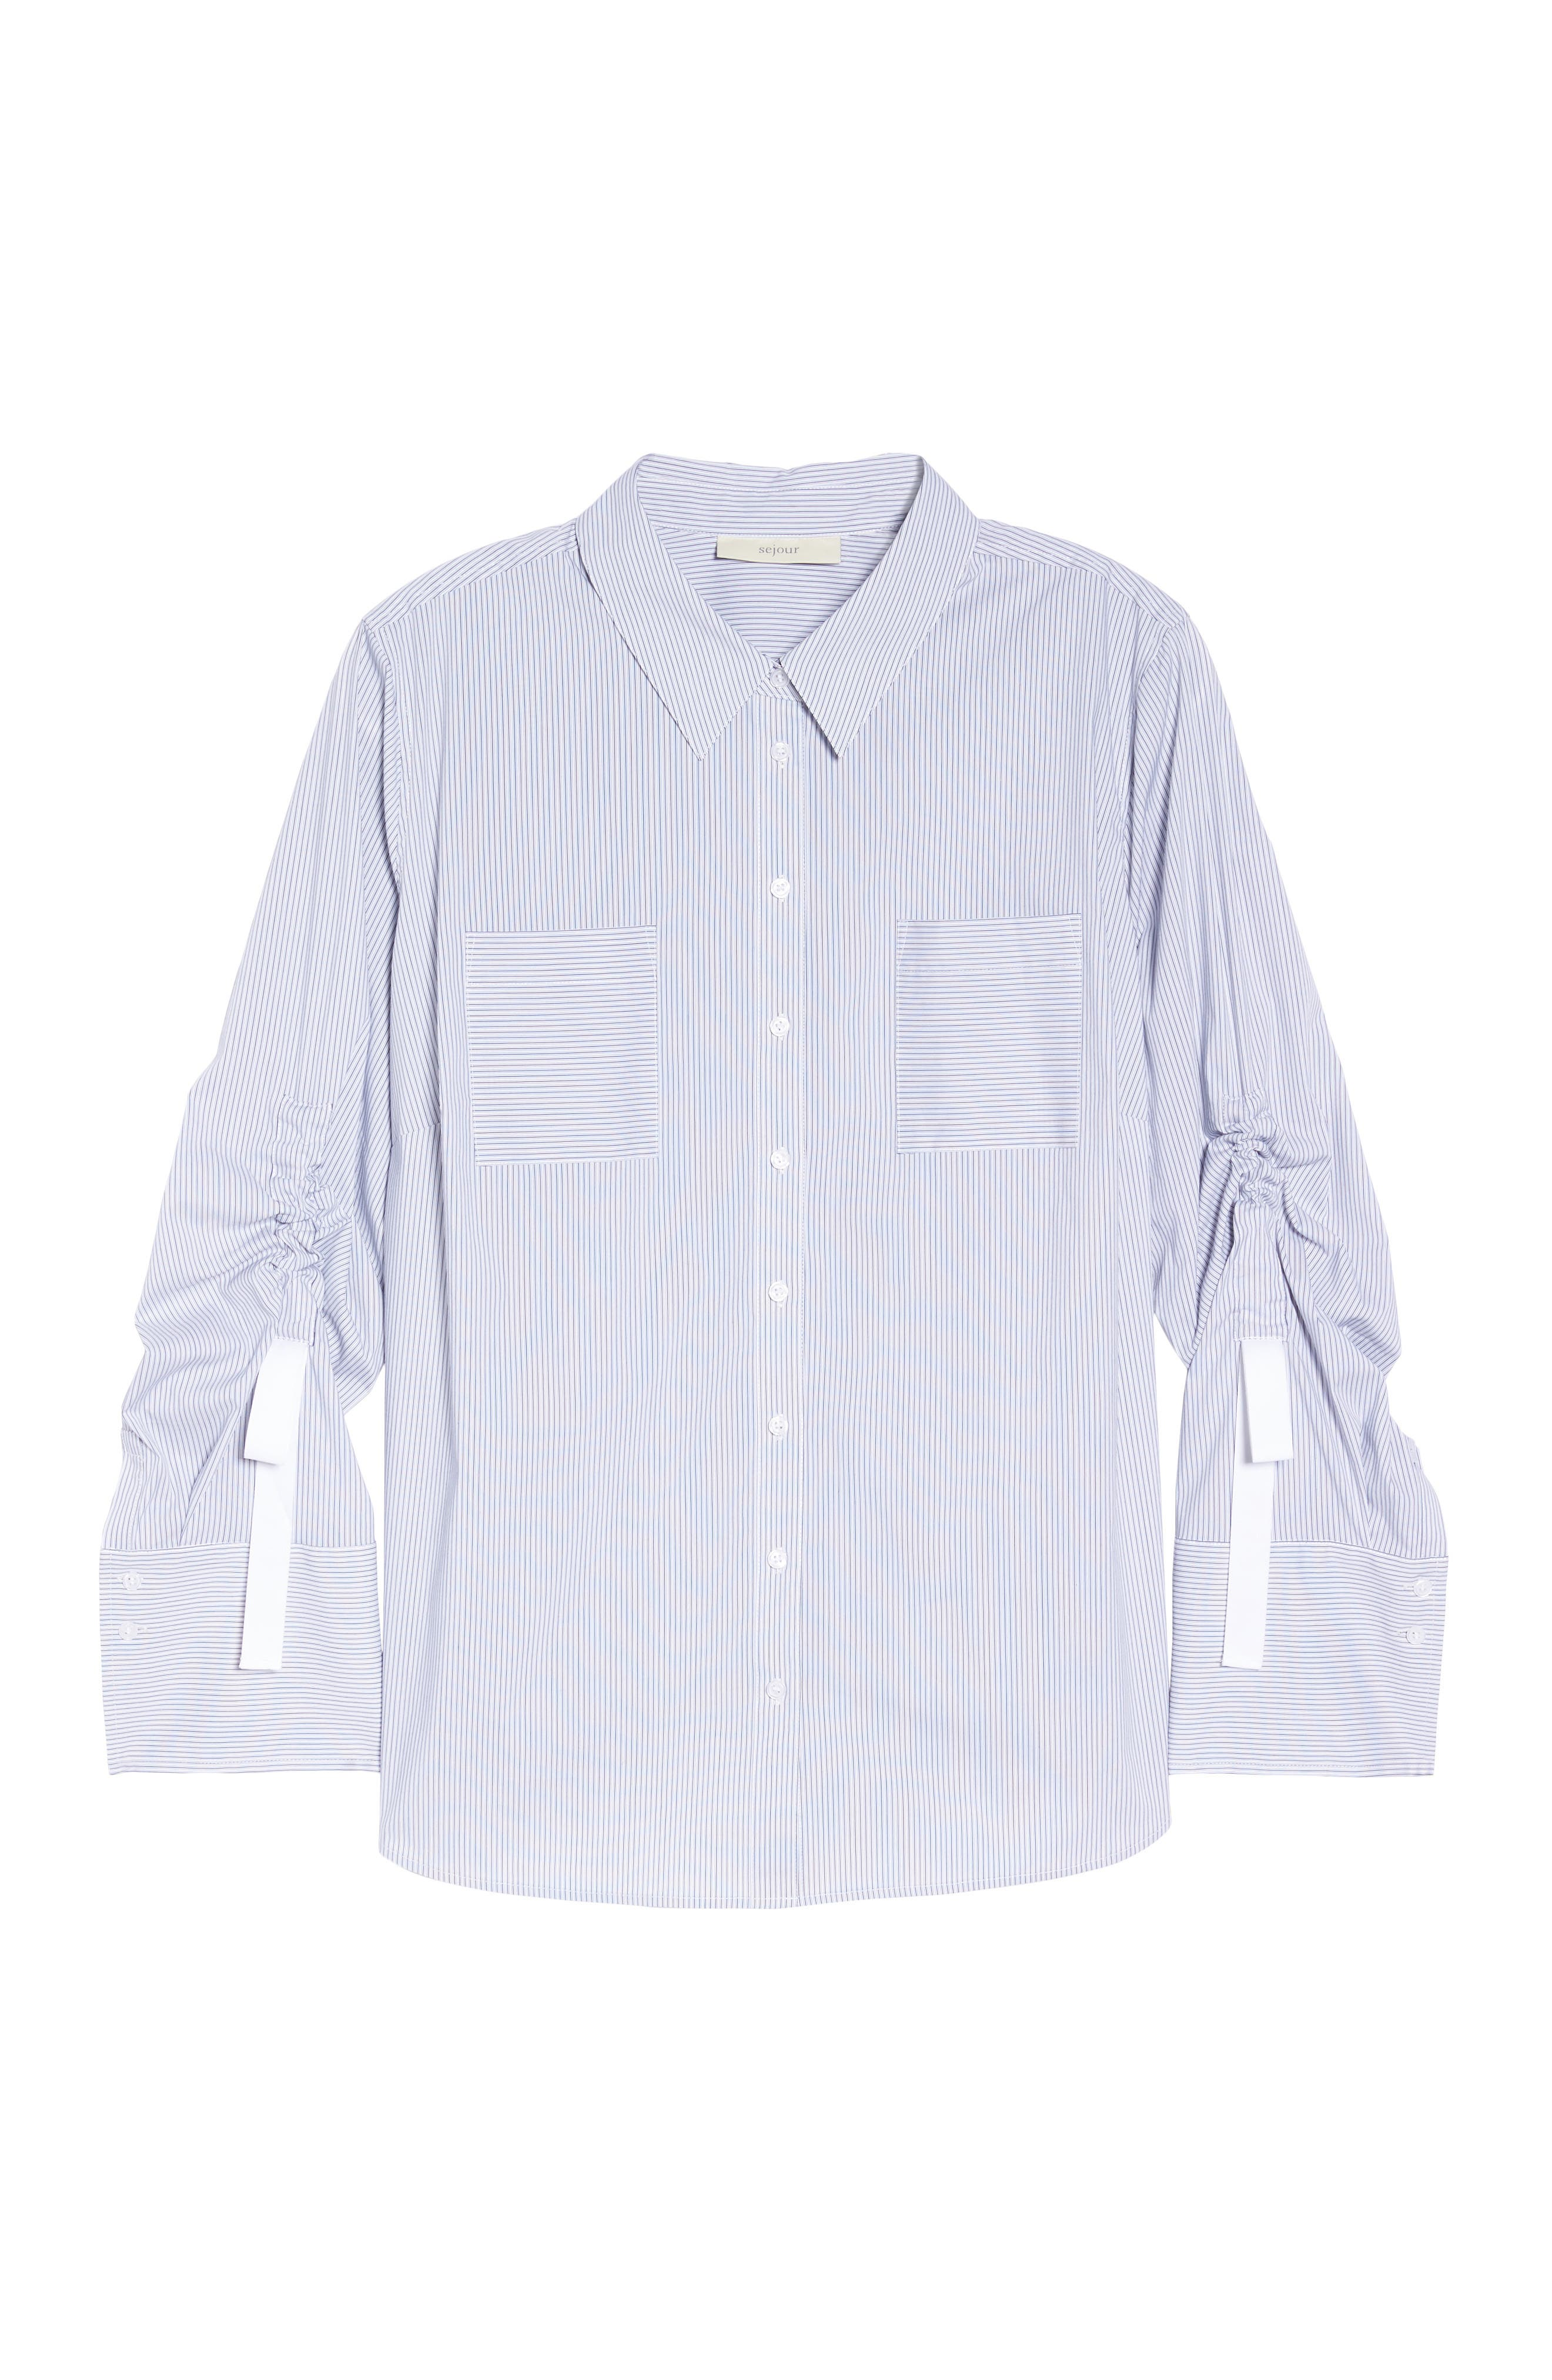 Gathered Sleeve Button Front Shirt,                             Alternate thumbnail 7, color,